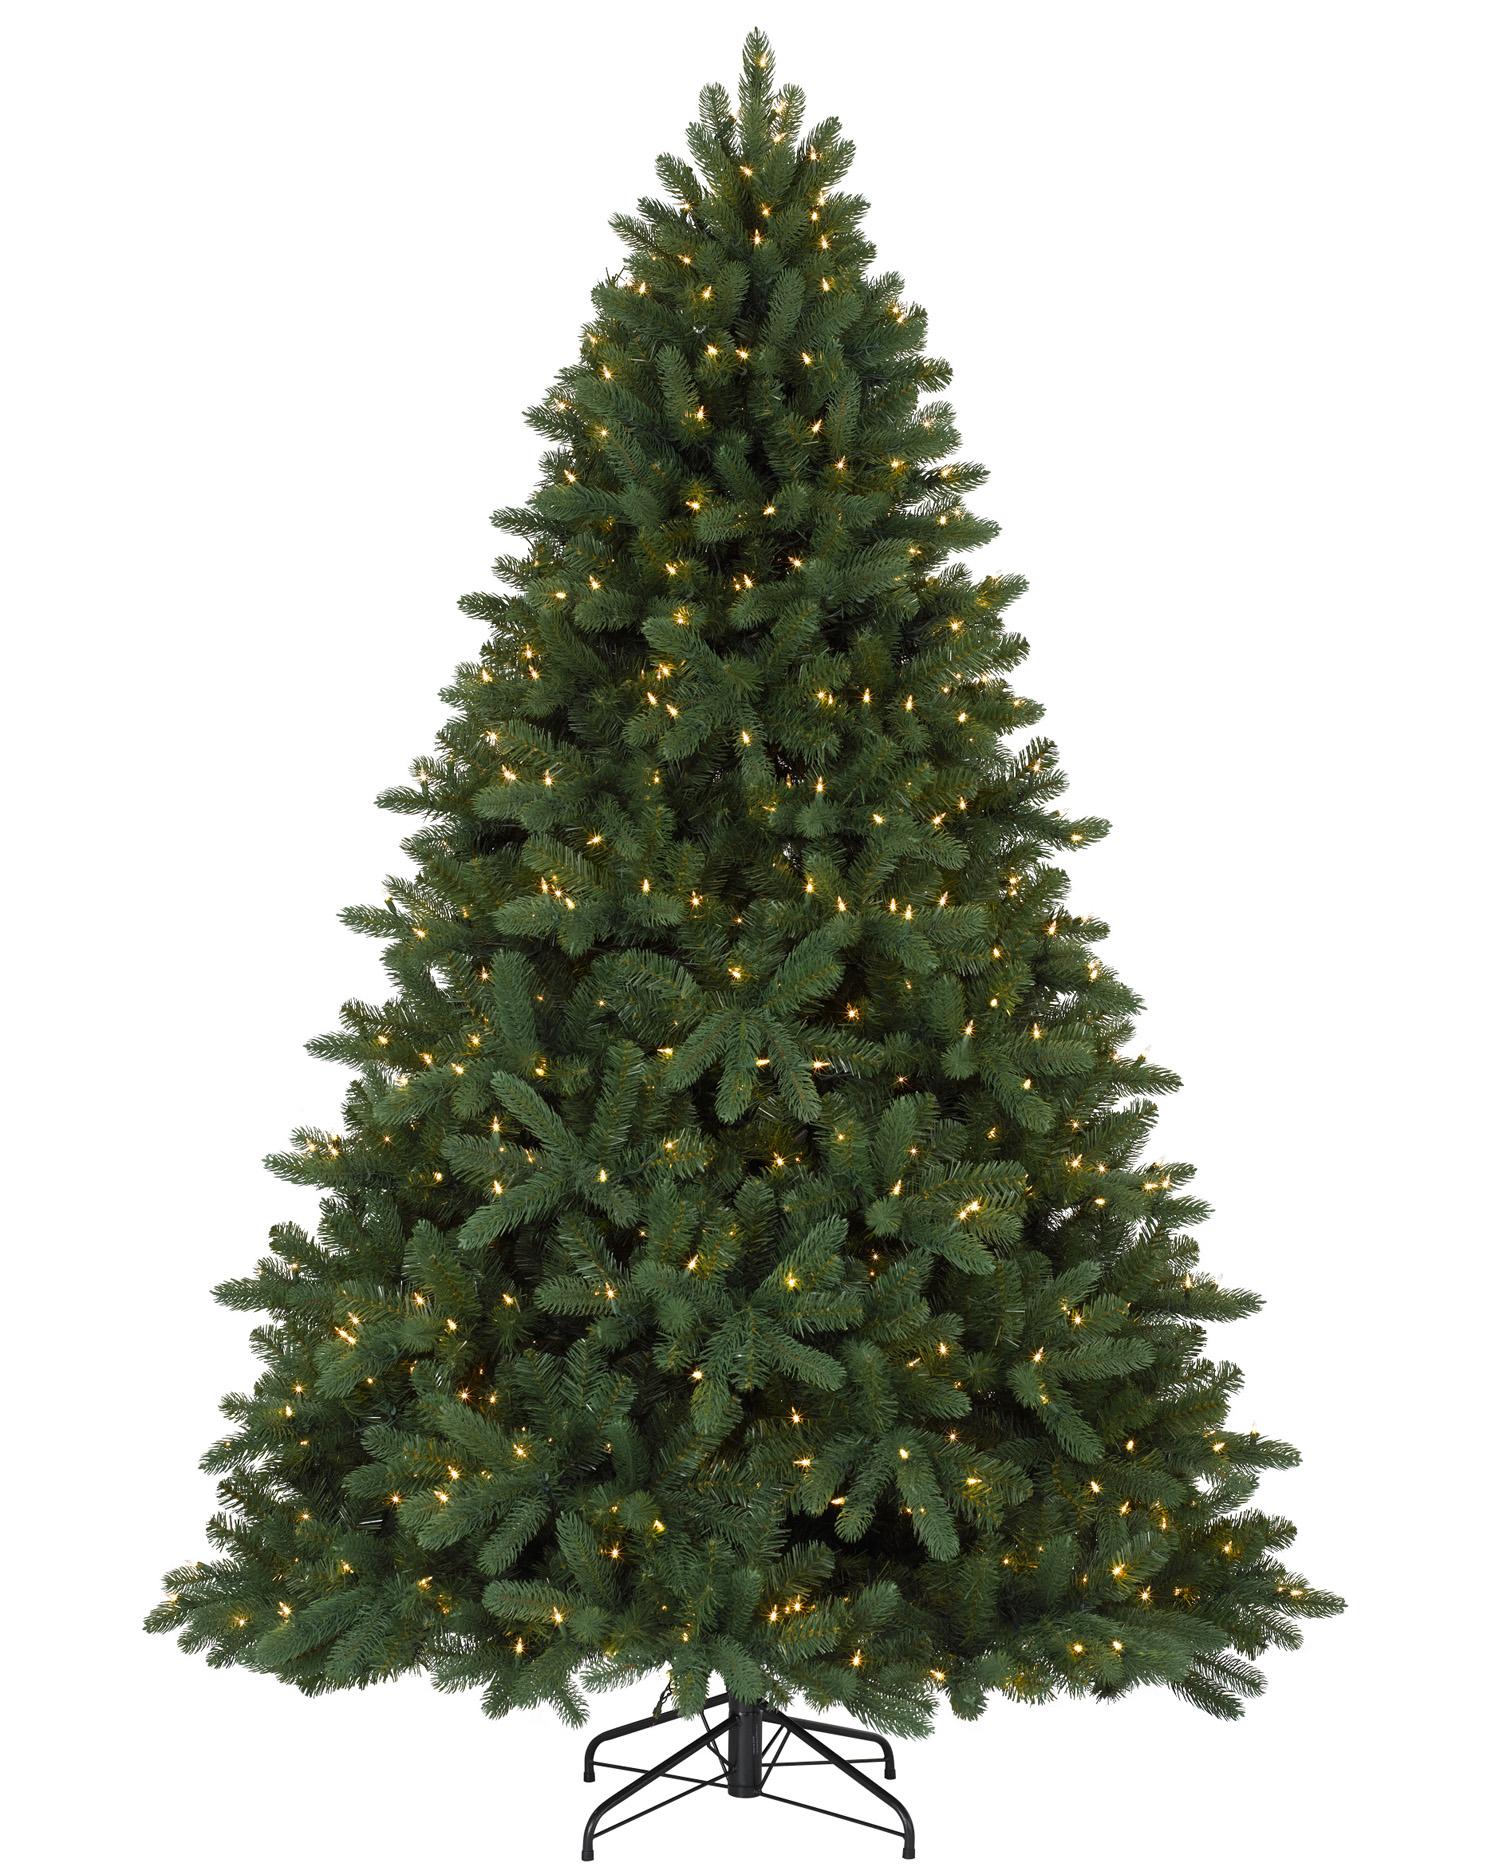 Alberta Spruce Evergreen Christmas Tree